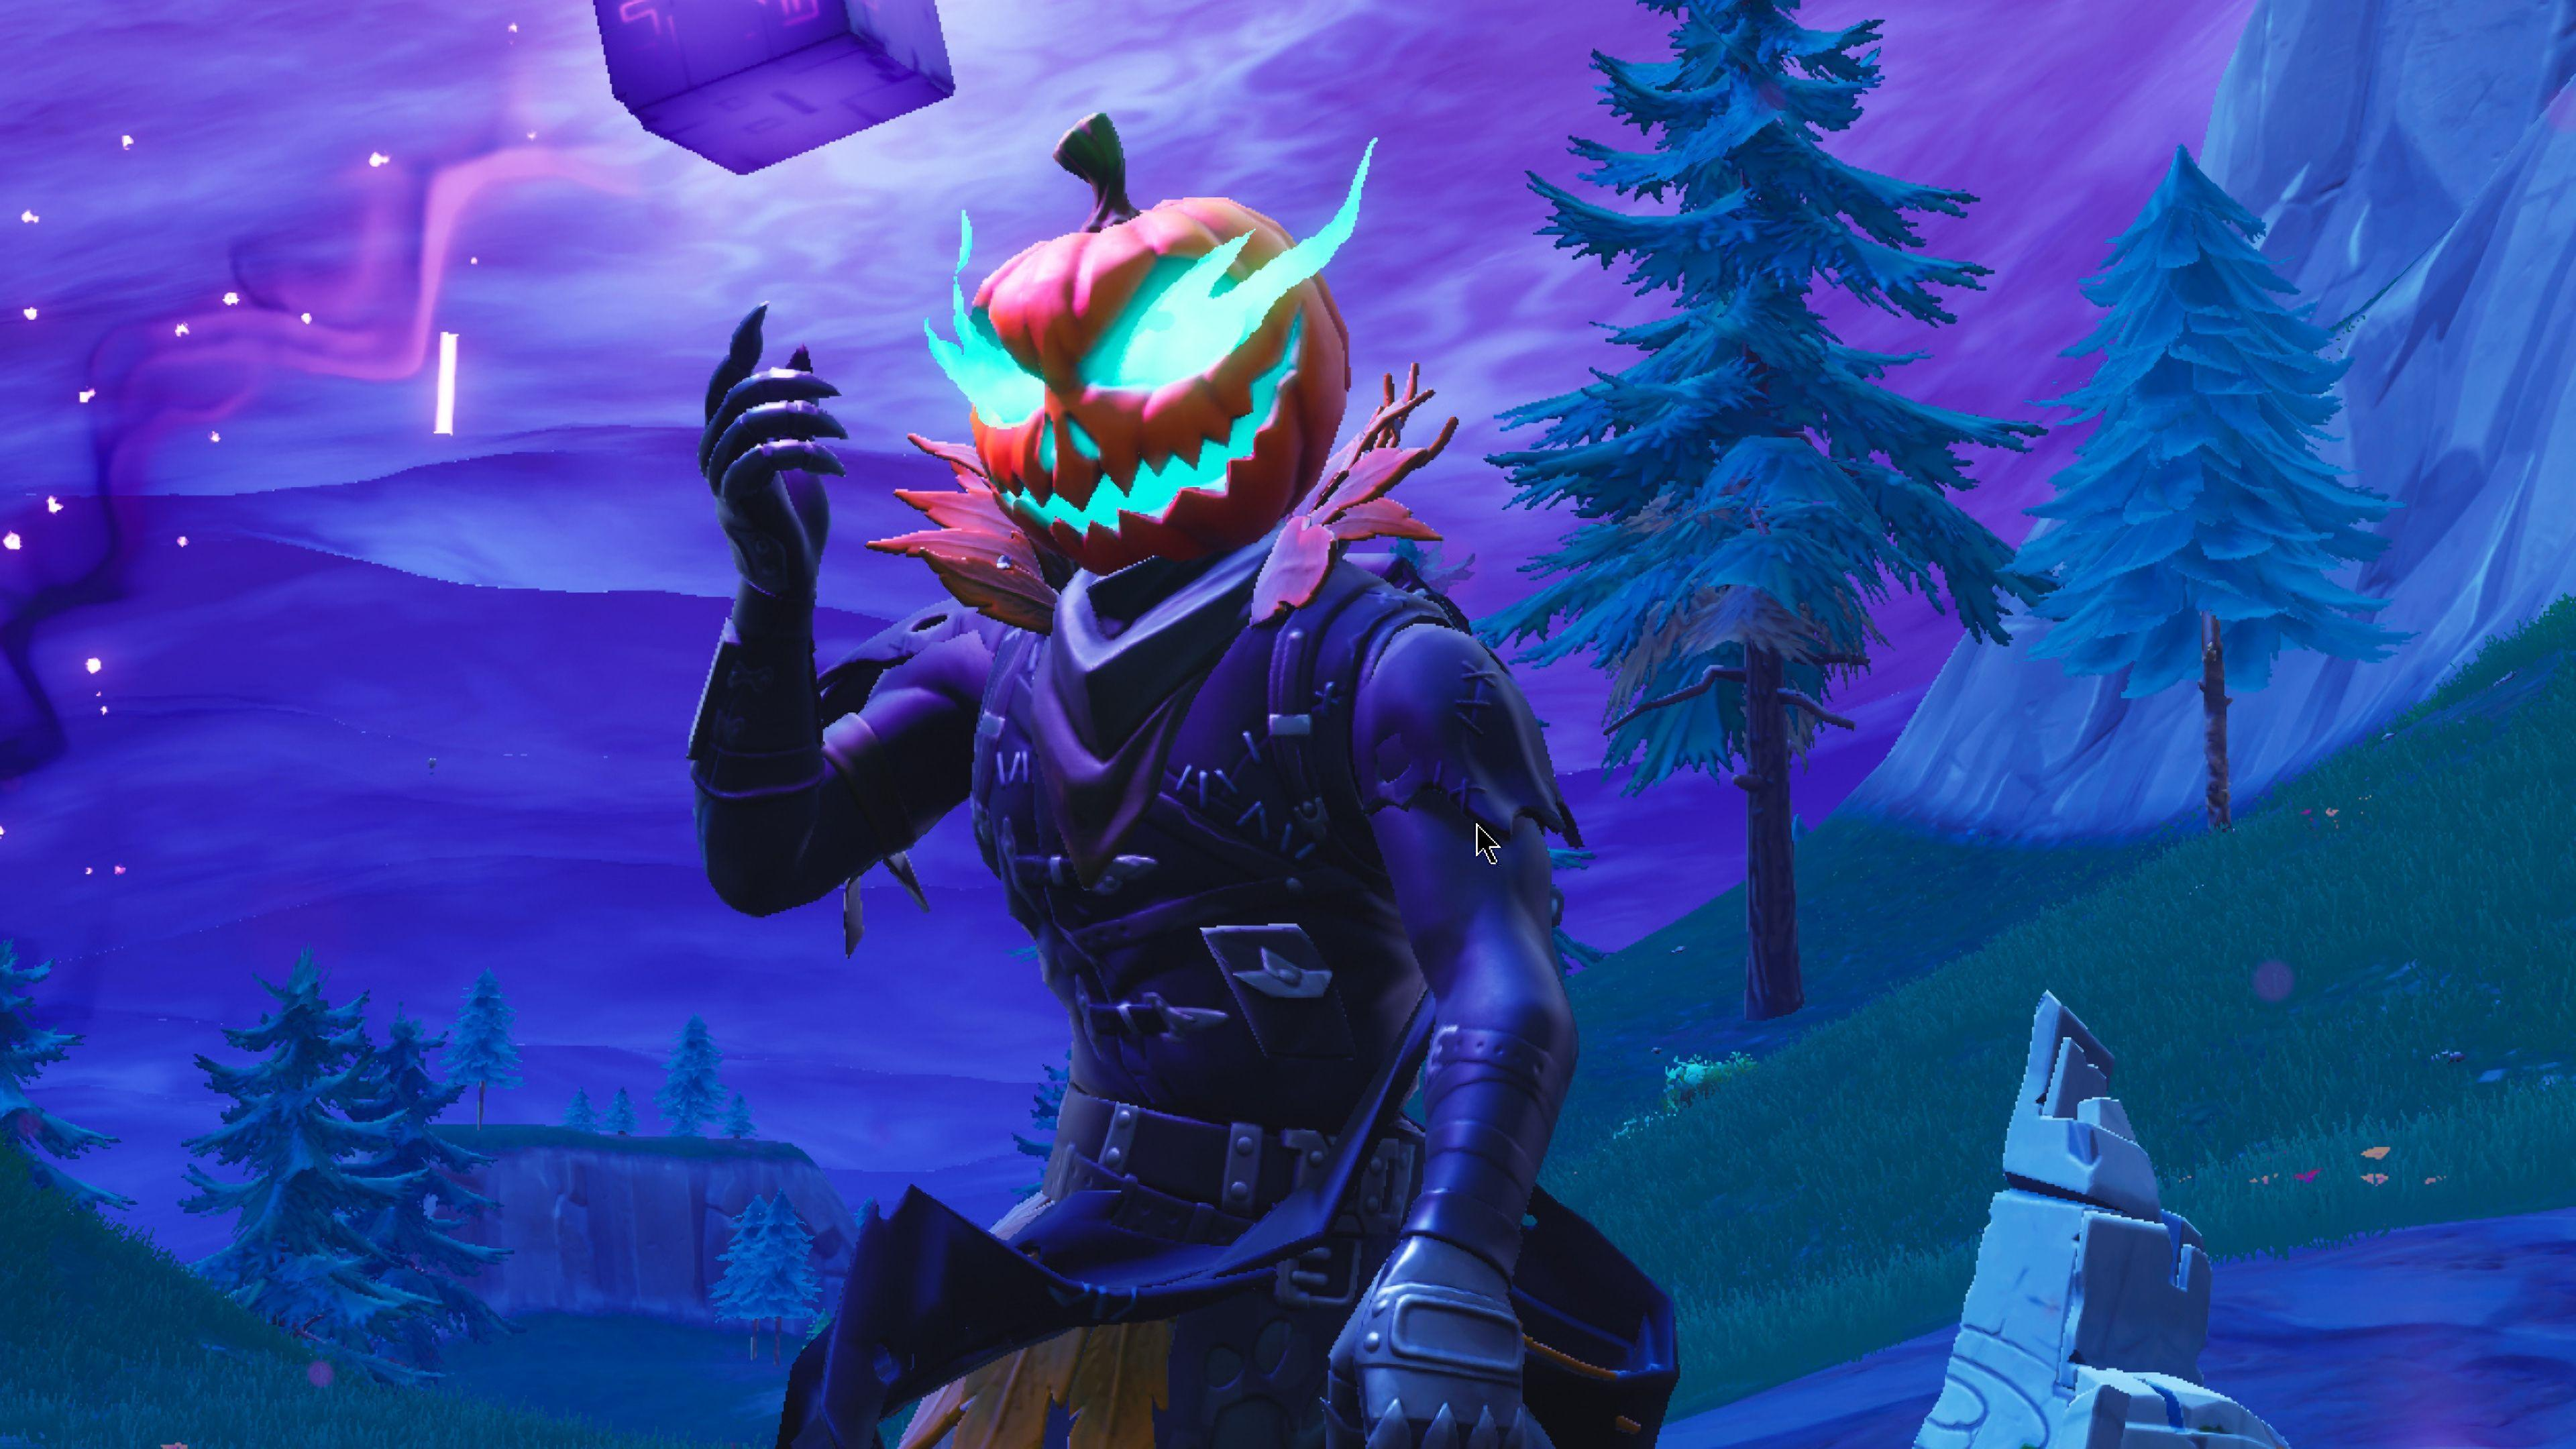 Hollowhead Fortnite 4k wallpapers Battle Royale 4k hd-wallpapers ...